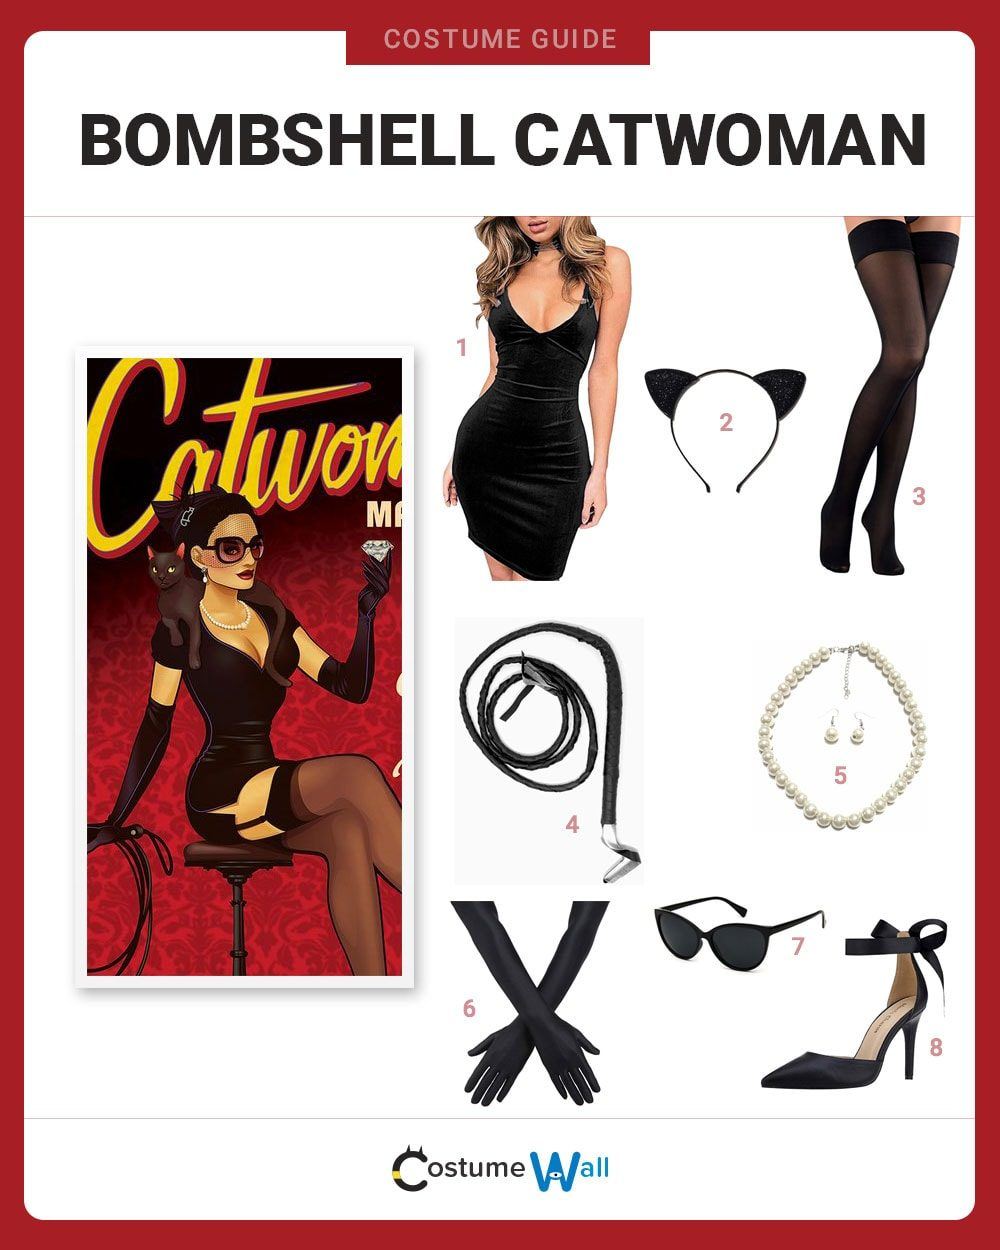 Bombshell Catwoman Costume Guide